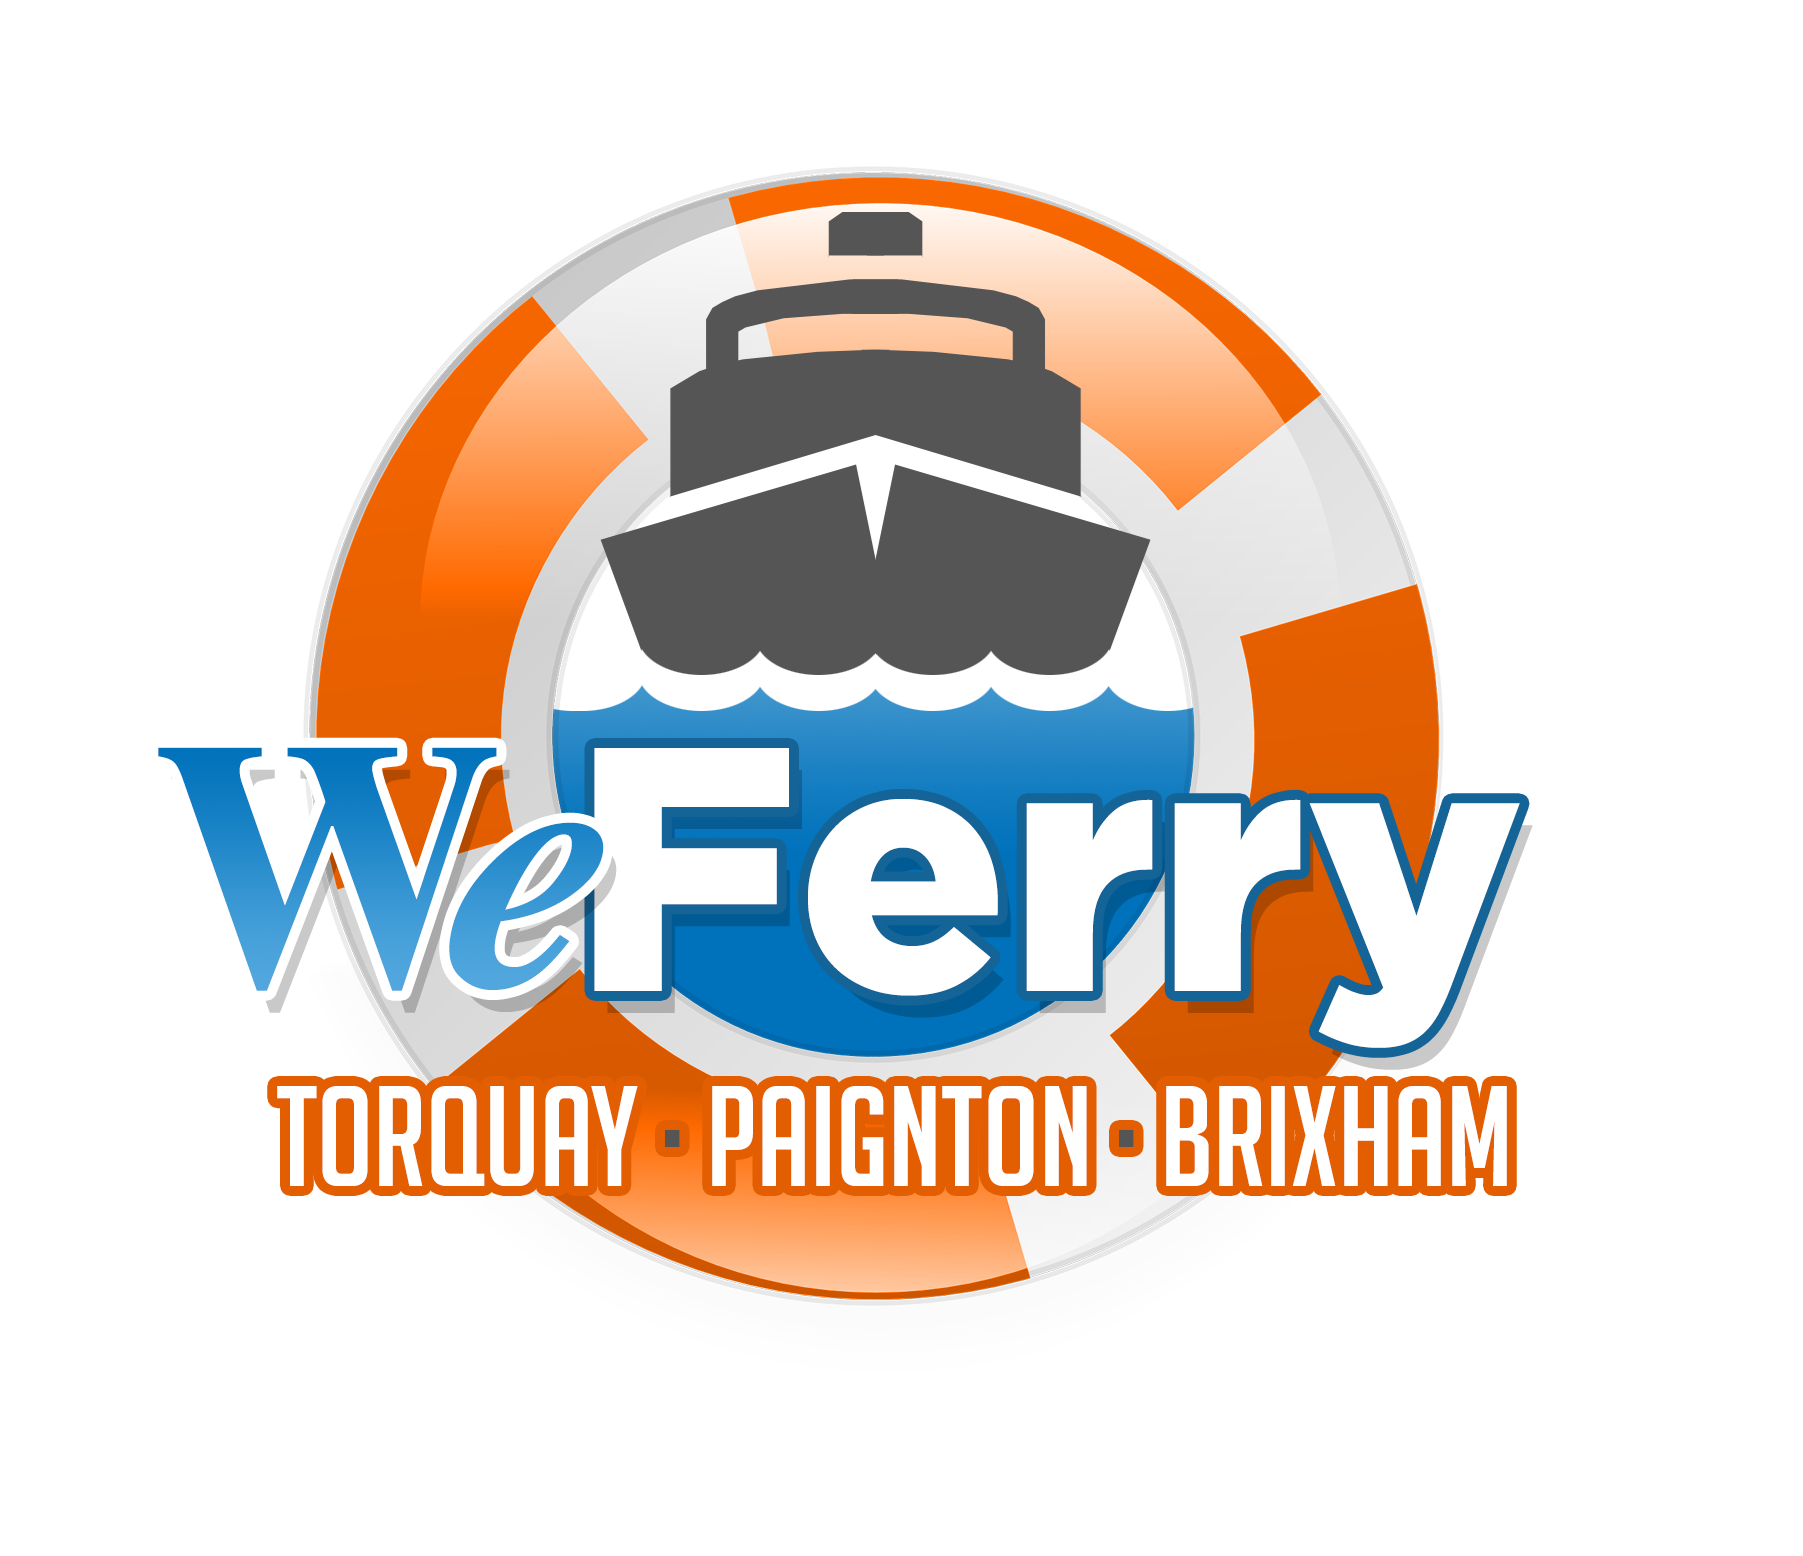 Find our Paignton ferry boats below...